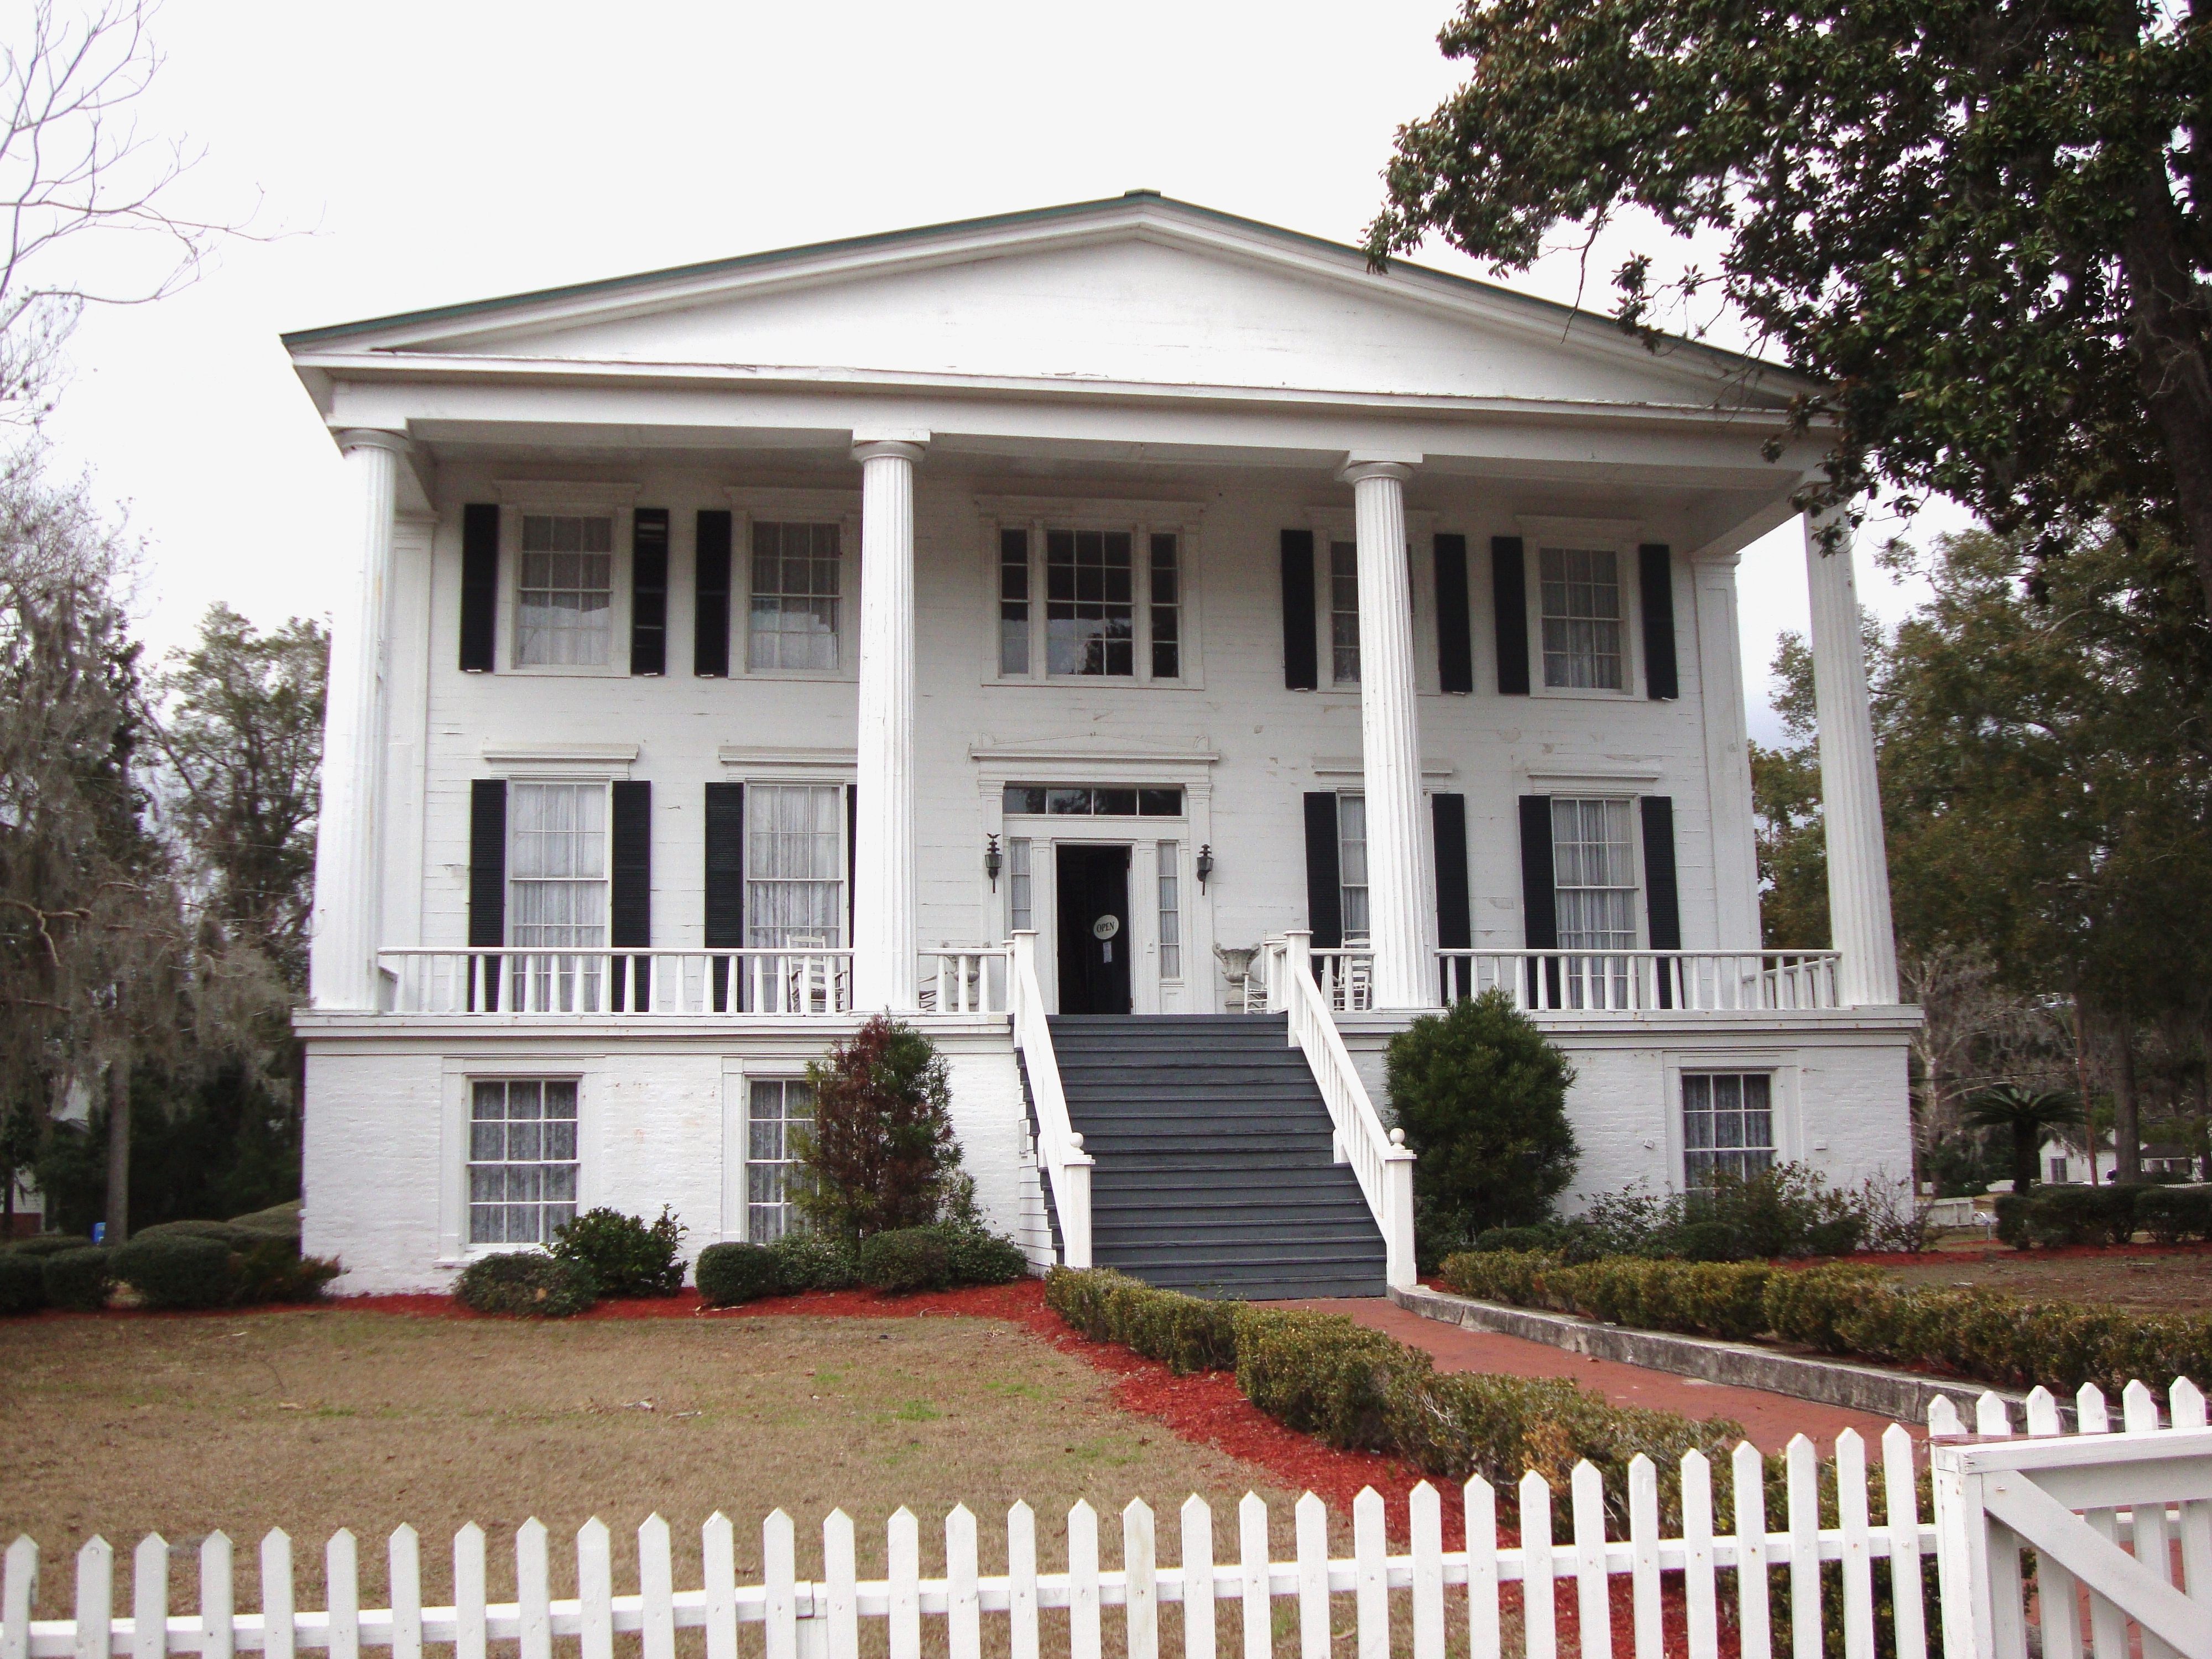 Orange Hall (1830), an antebellum home in St. Marys, Georgia, is one of the finest examples of the Greek Revival style in the state.